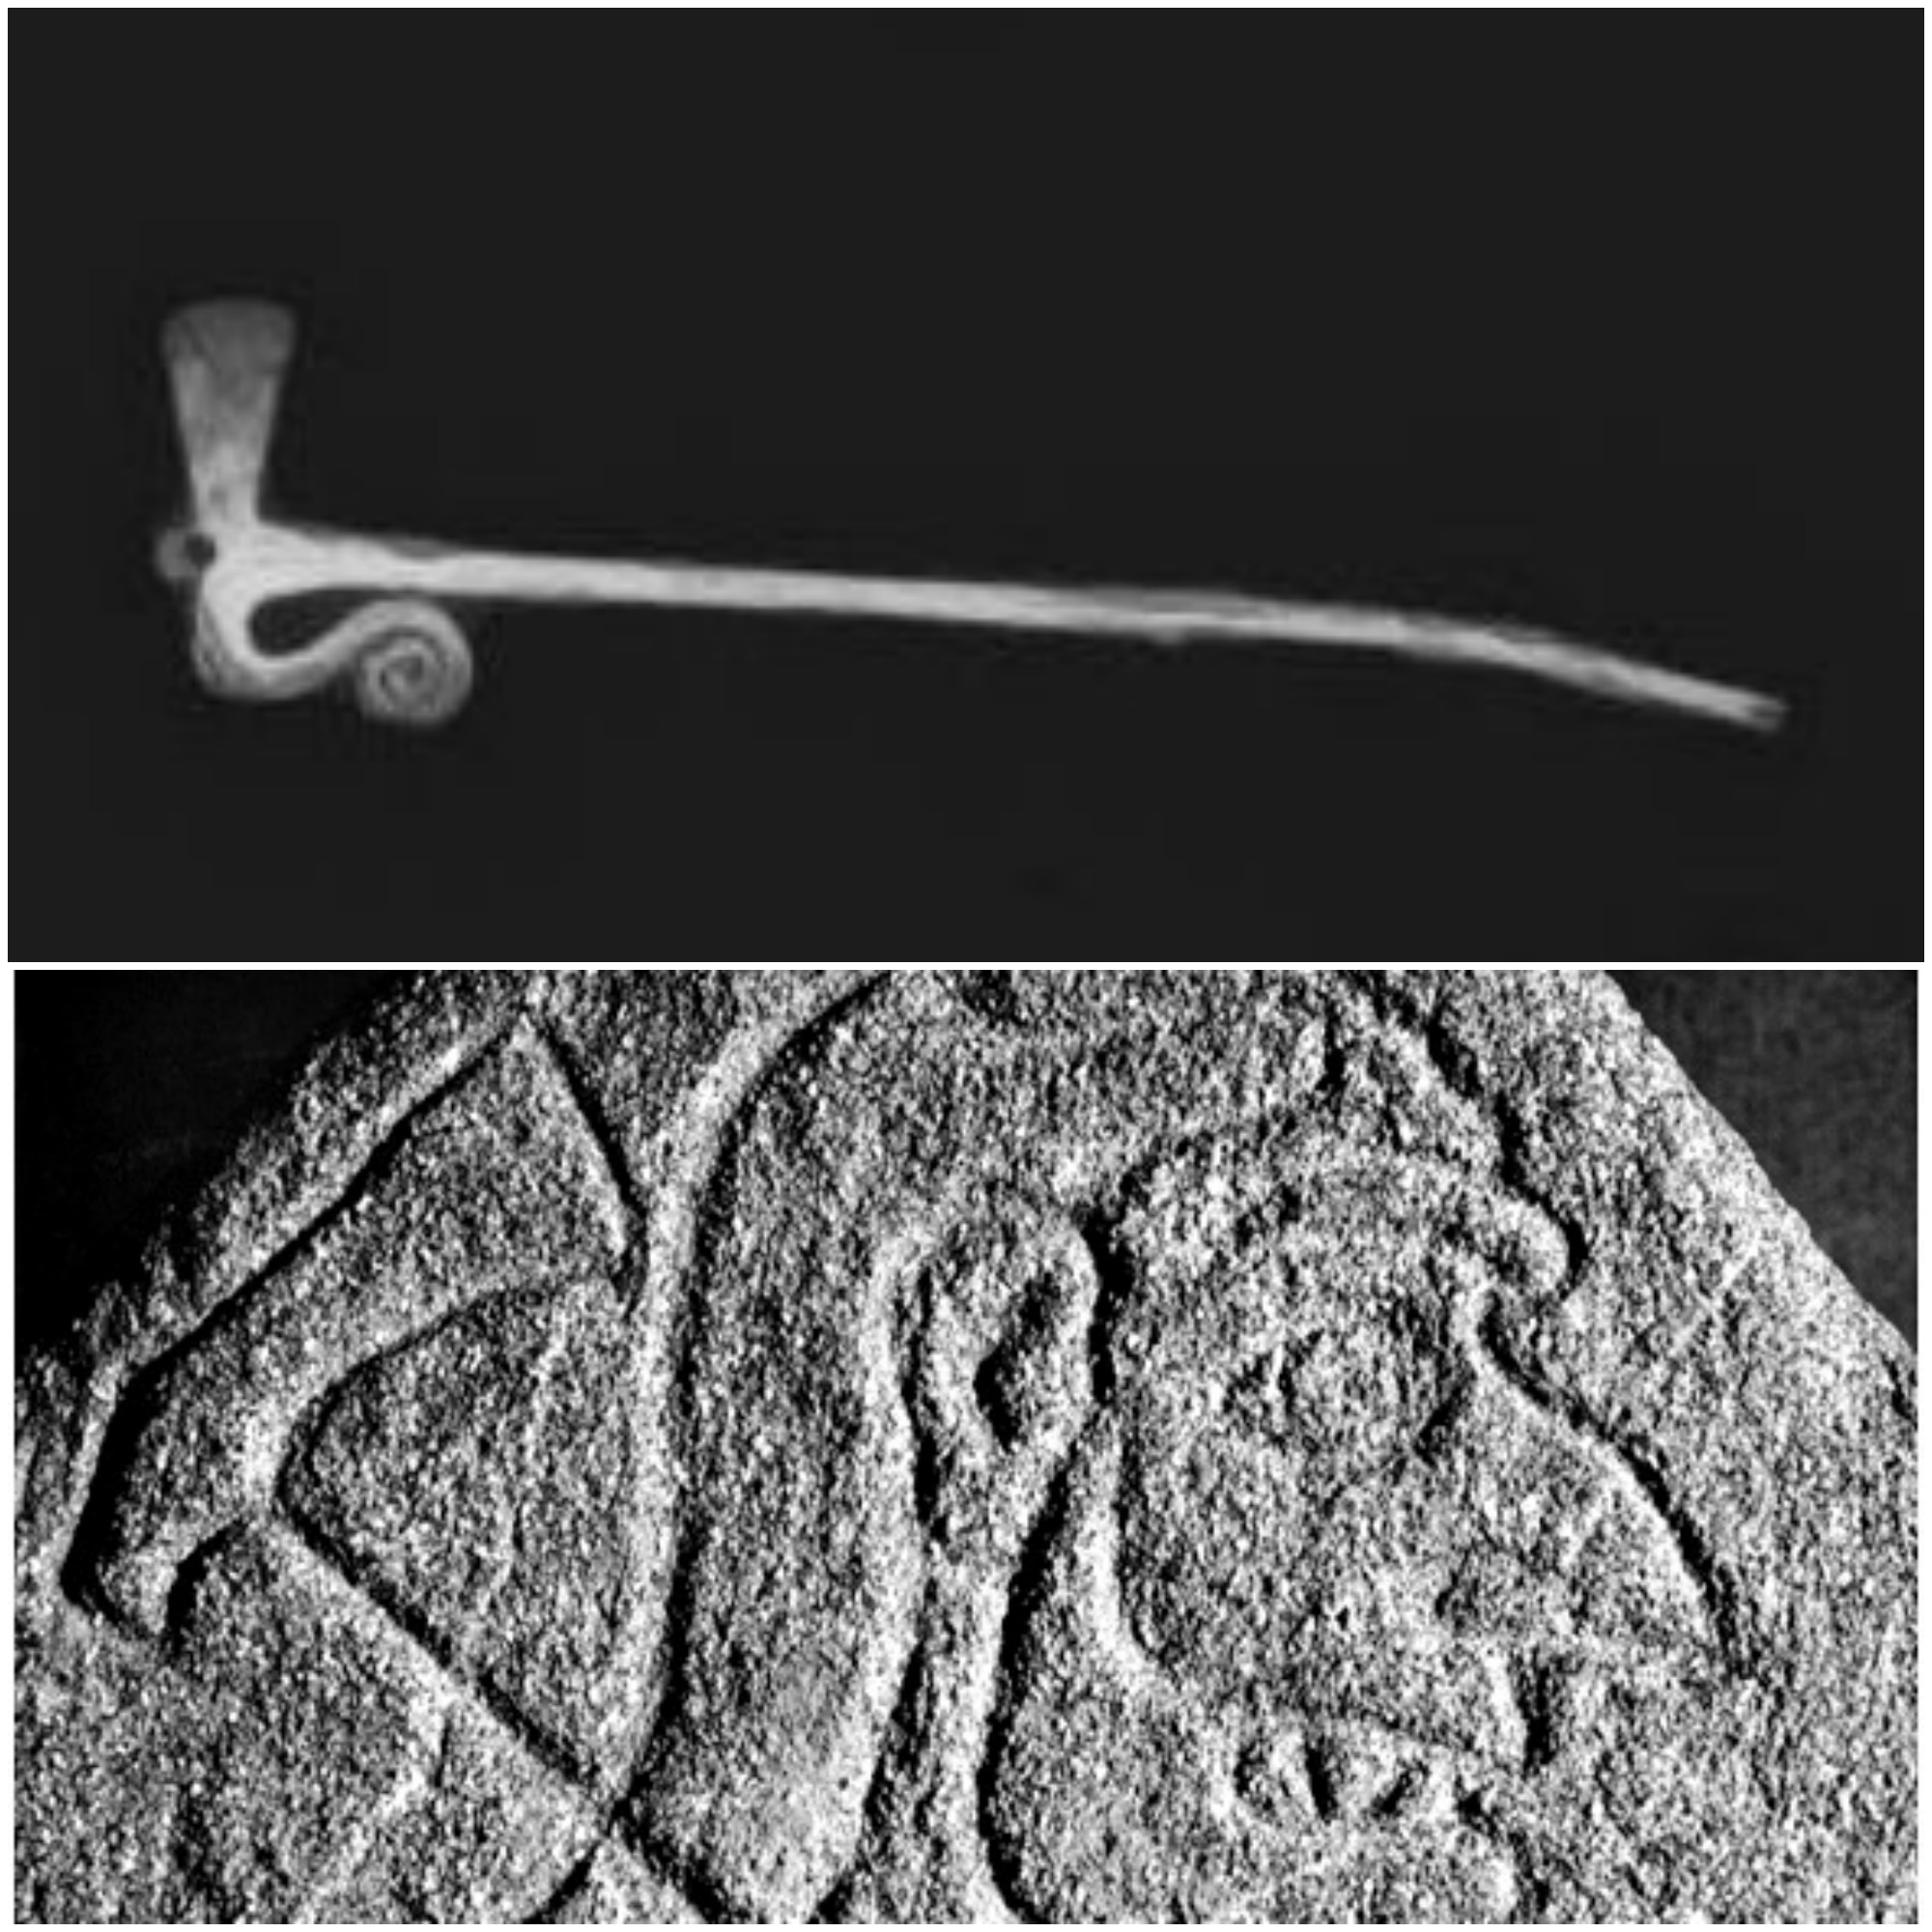 Axe-headed pin (top) and the 'Rhynie Man' (below).